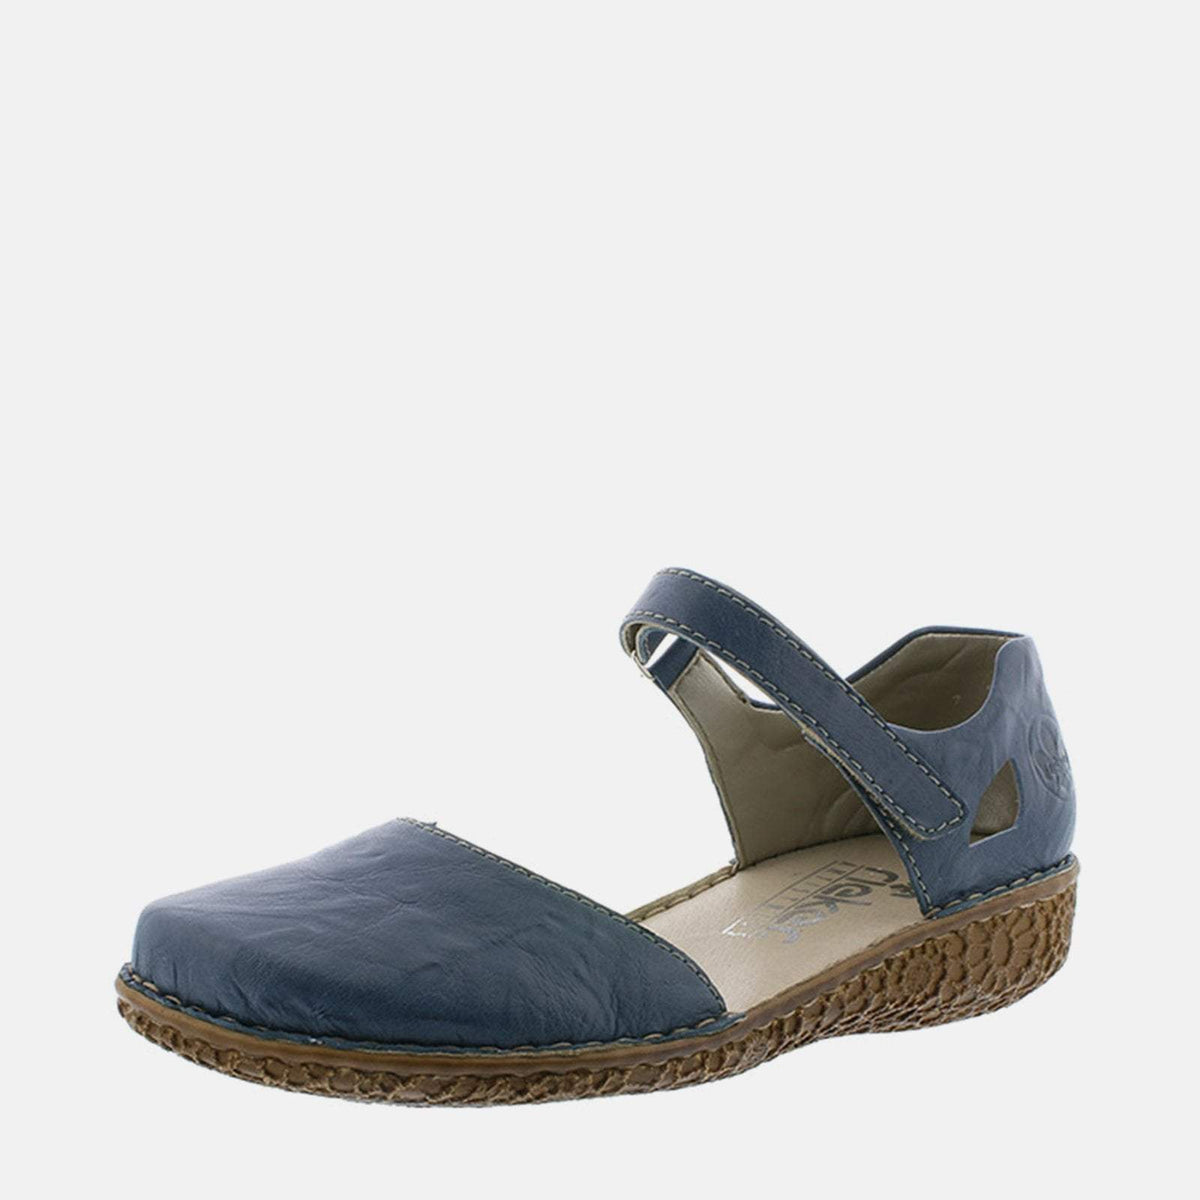 info for e690d 8f9cf M0969 13 Azur - Rieker Ladies Blue Flat Summer Sandal